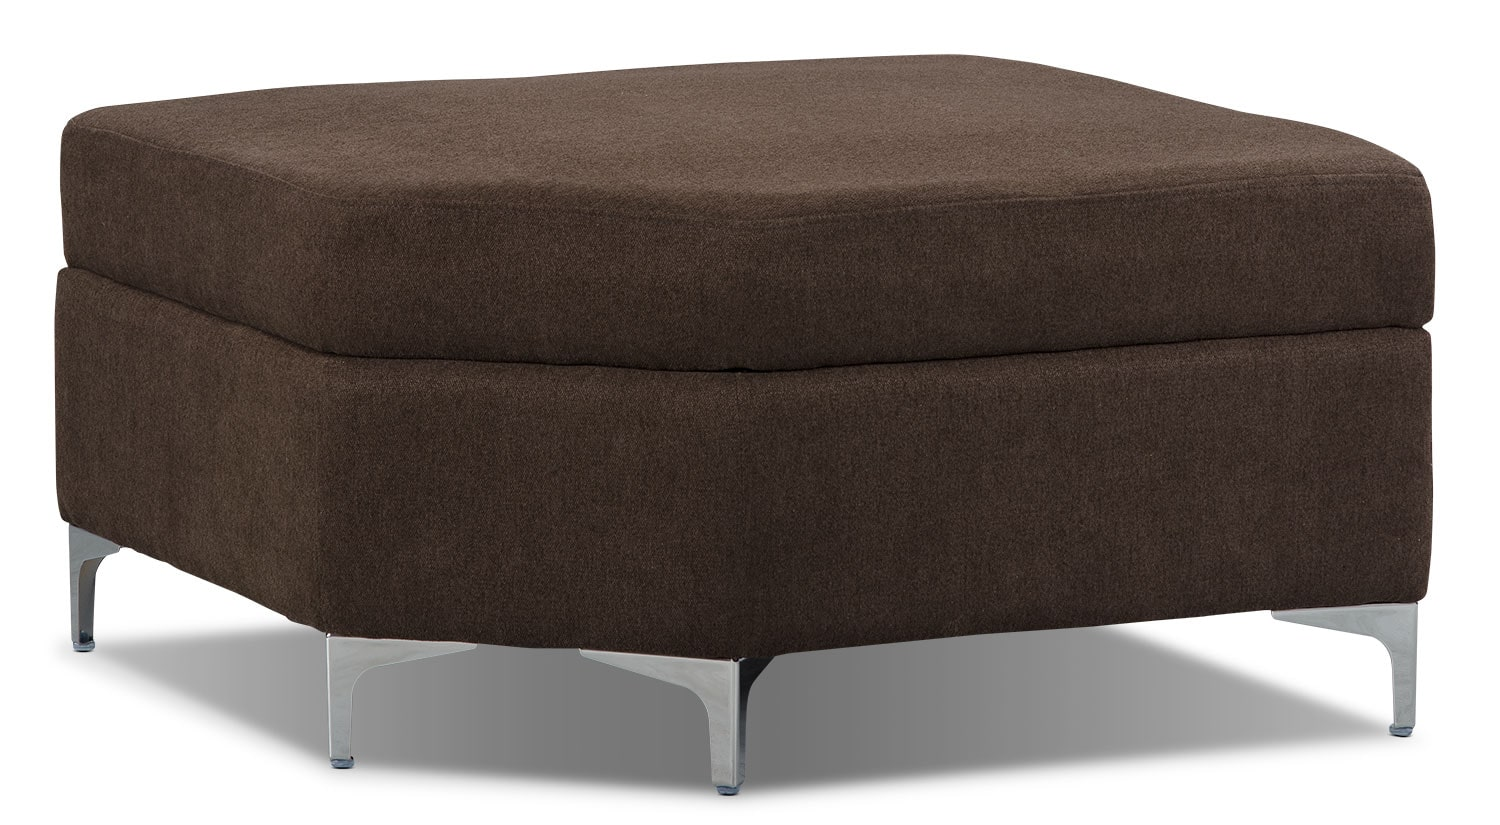 London Linen-Look Fabric Storage Ottoman – Chocolate